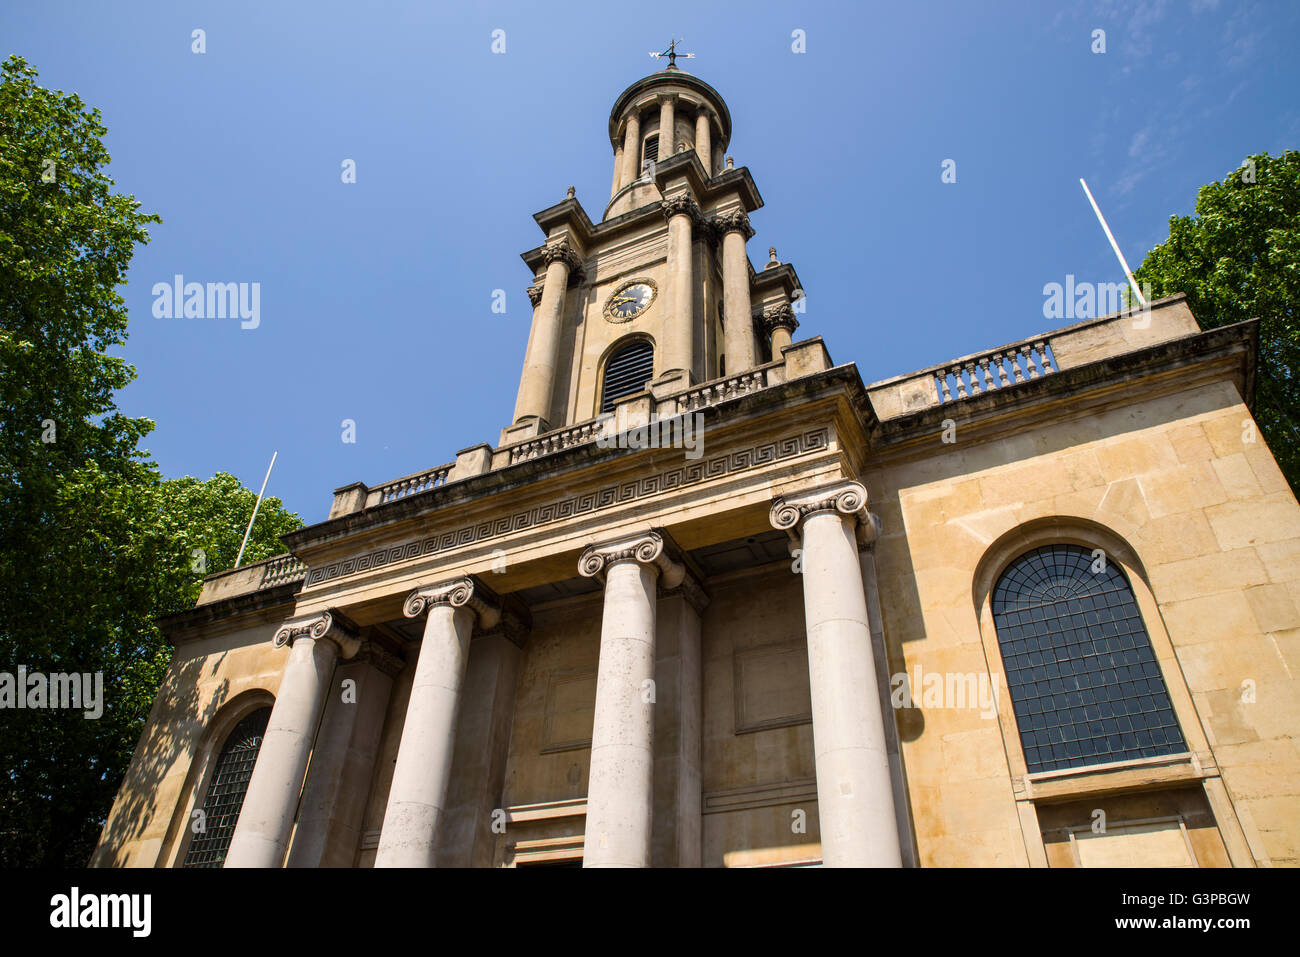 Looking up at the impressive Holy Trinity Church in Marylebone, London. - Stock Image